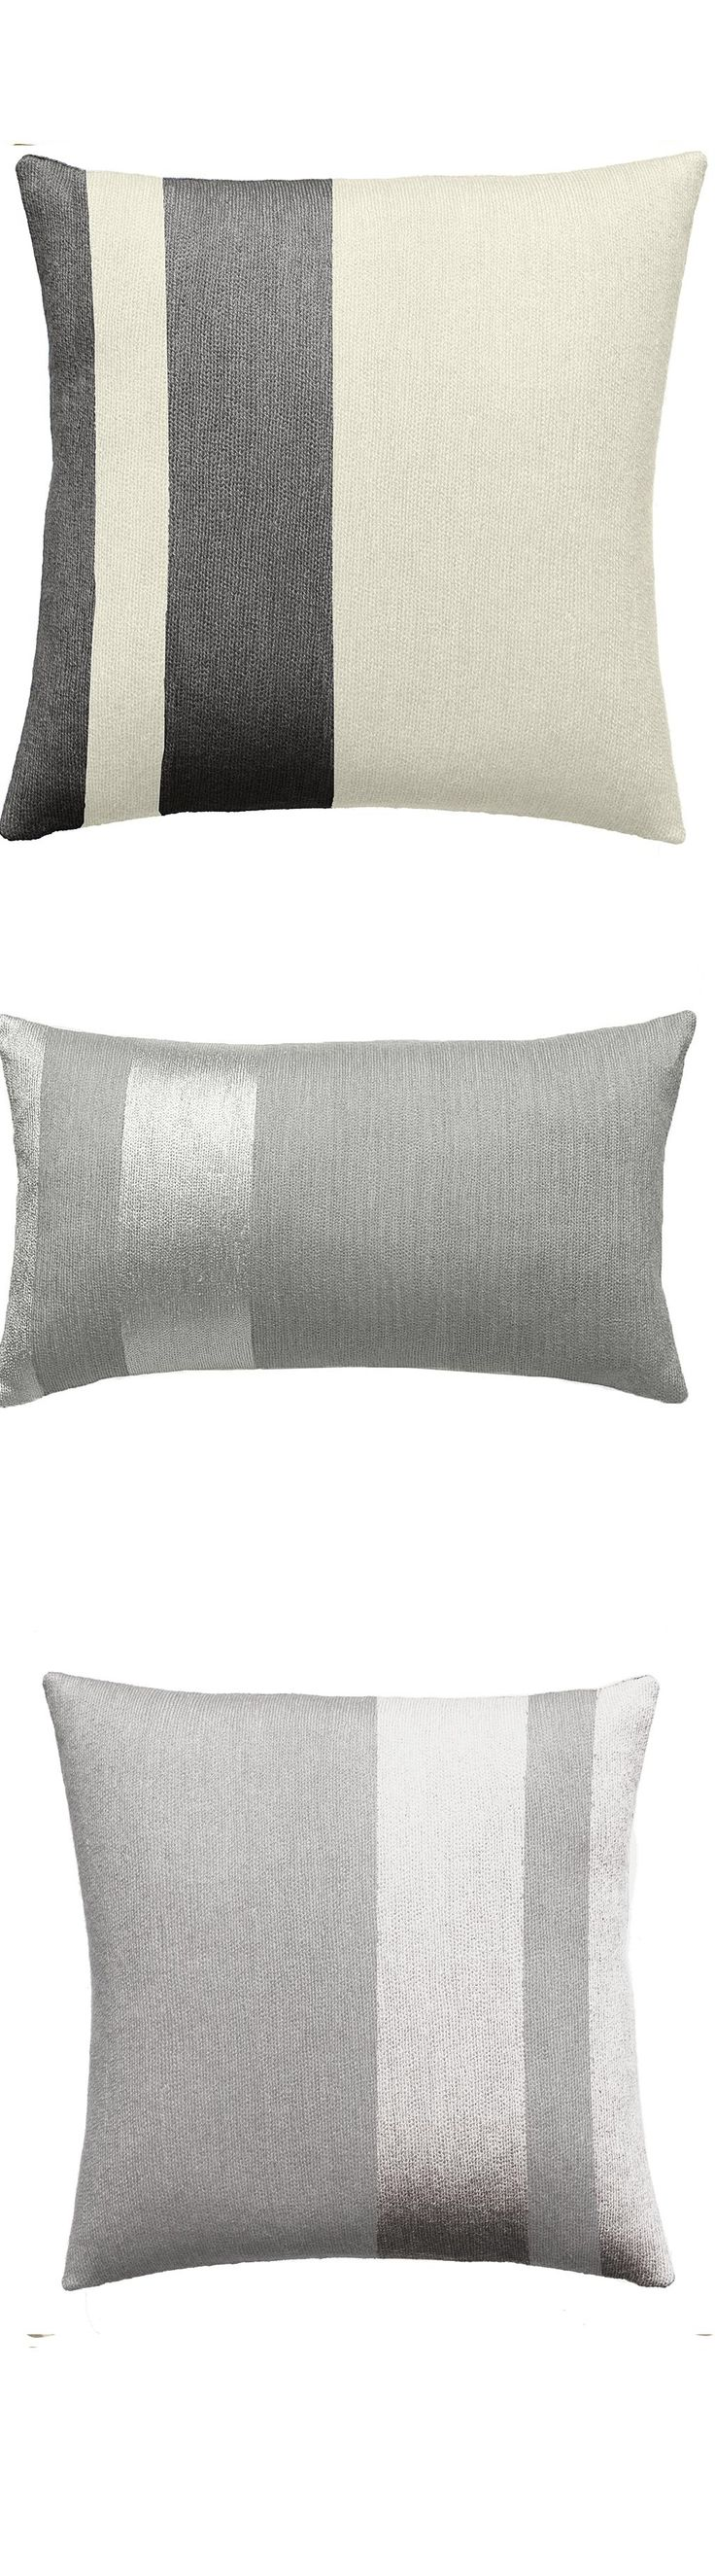 Decorative bed pillows -  Gray Pillows Gray Throw Pillows Gray Modern Pillows By Instyle Decorative Pillows For Bedpillows